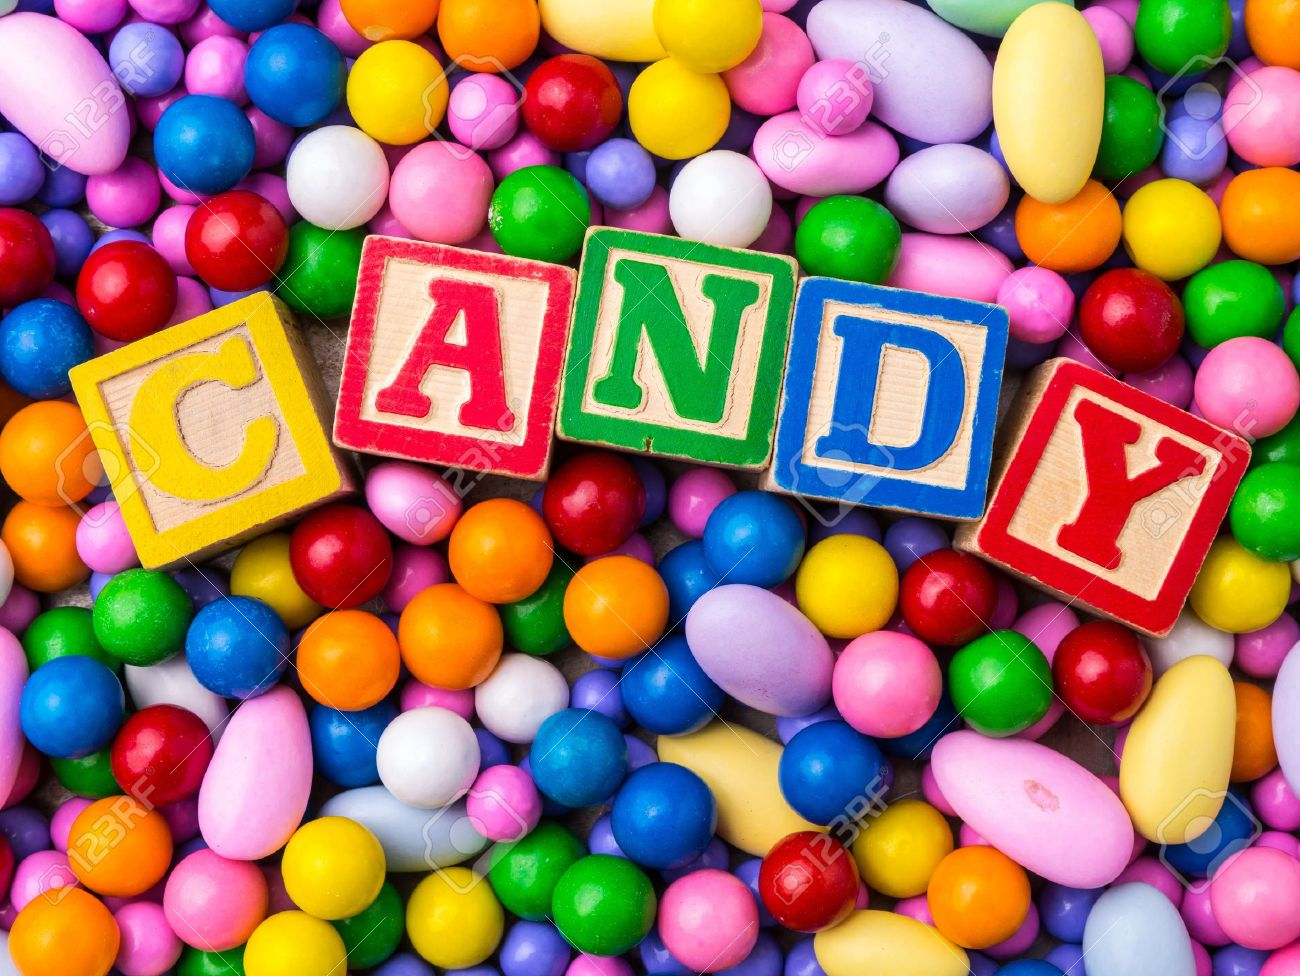 candy spelled out in alphabet blocks with colorful candy background